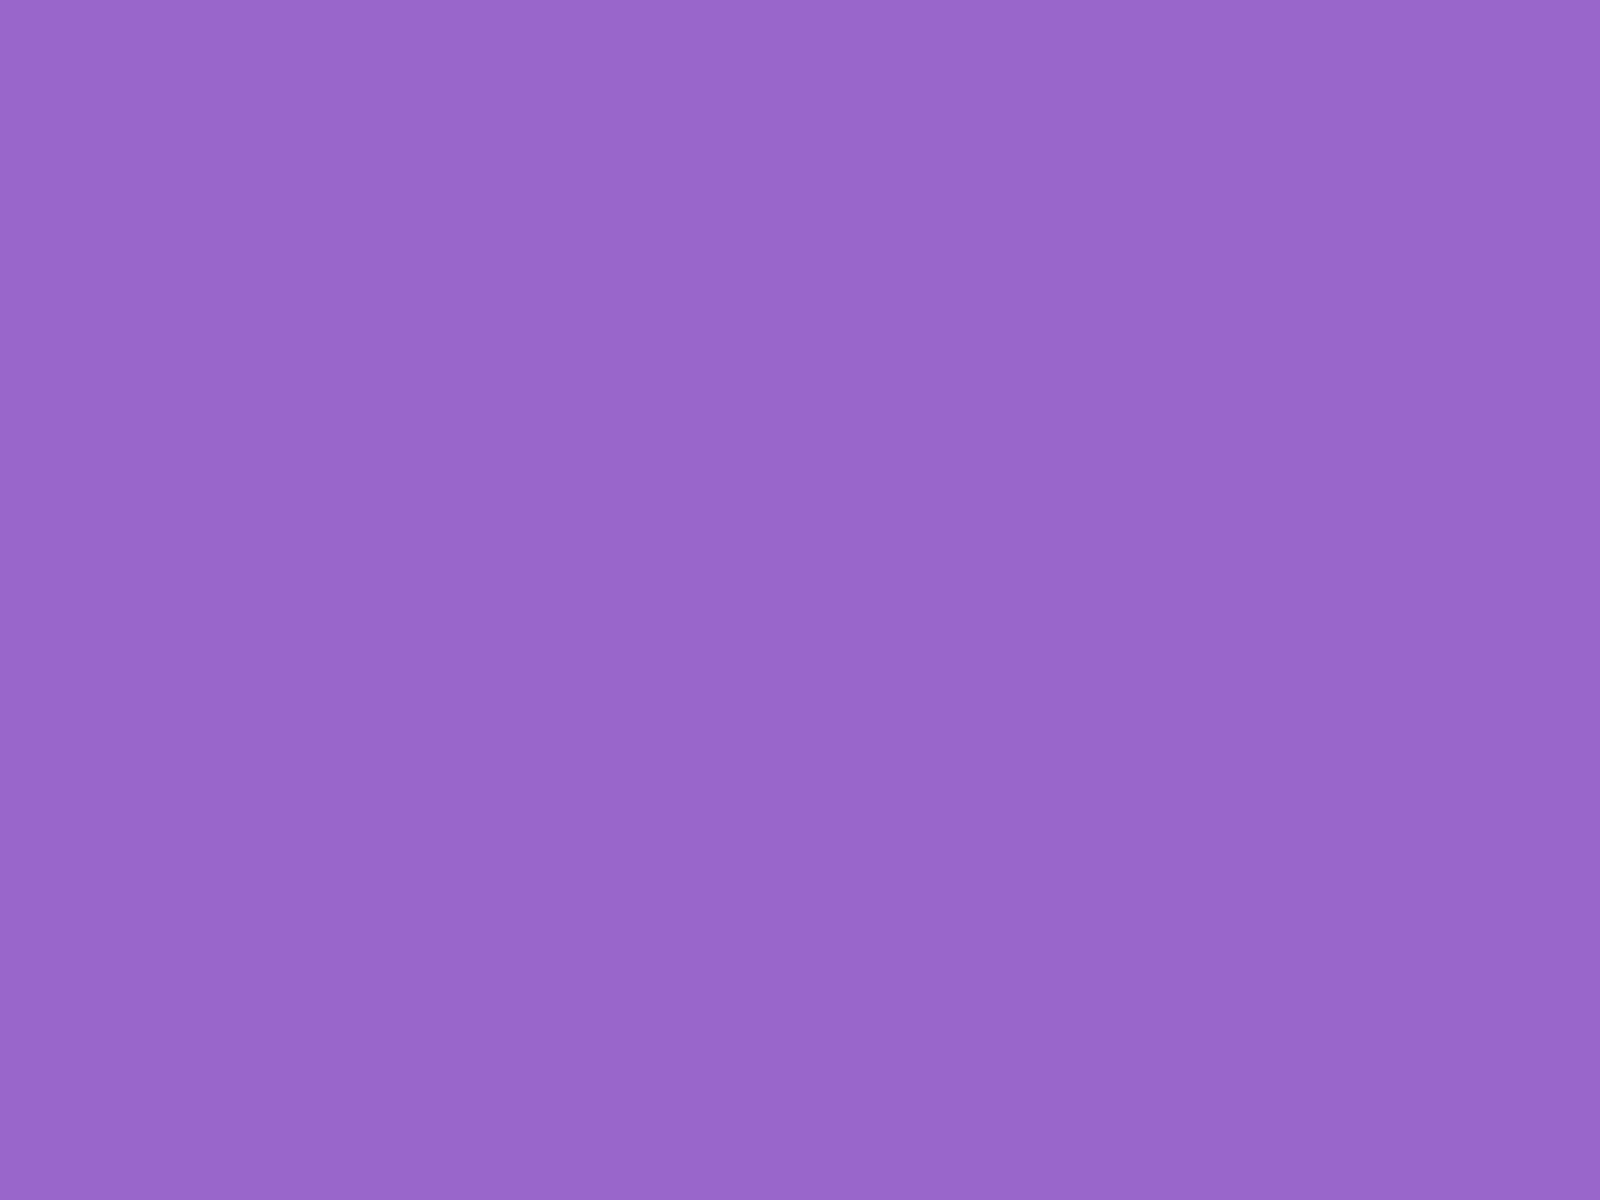 1600x1200 Amethyst Solid Color Background